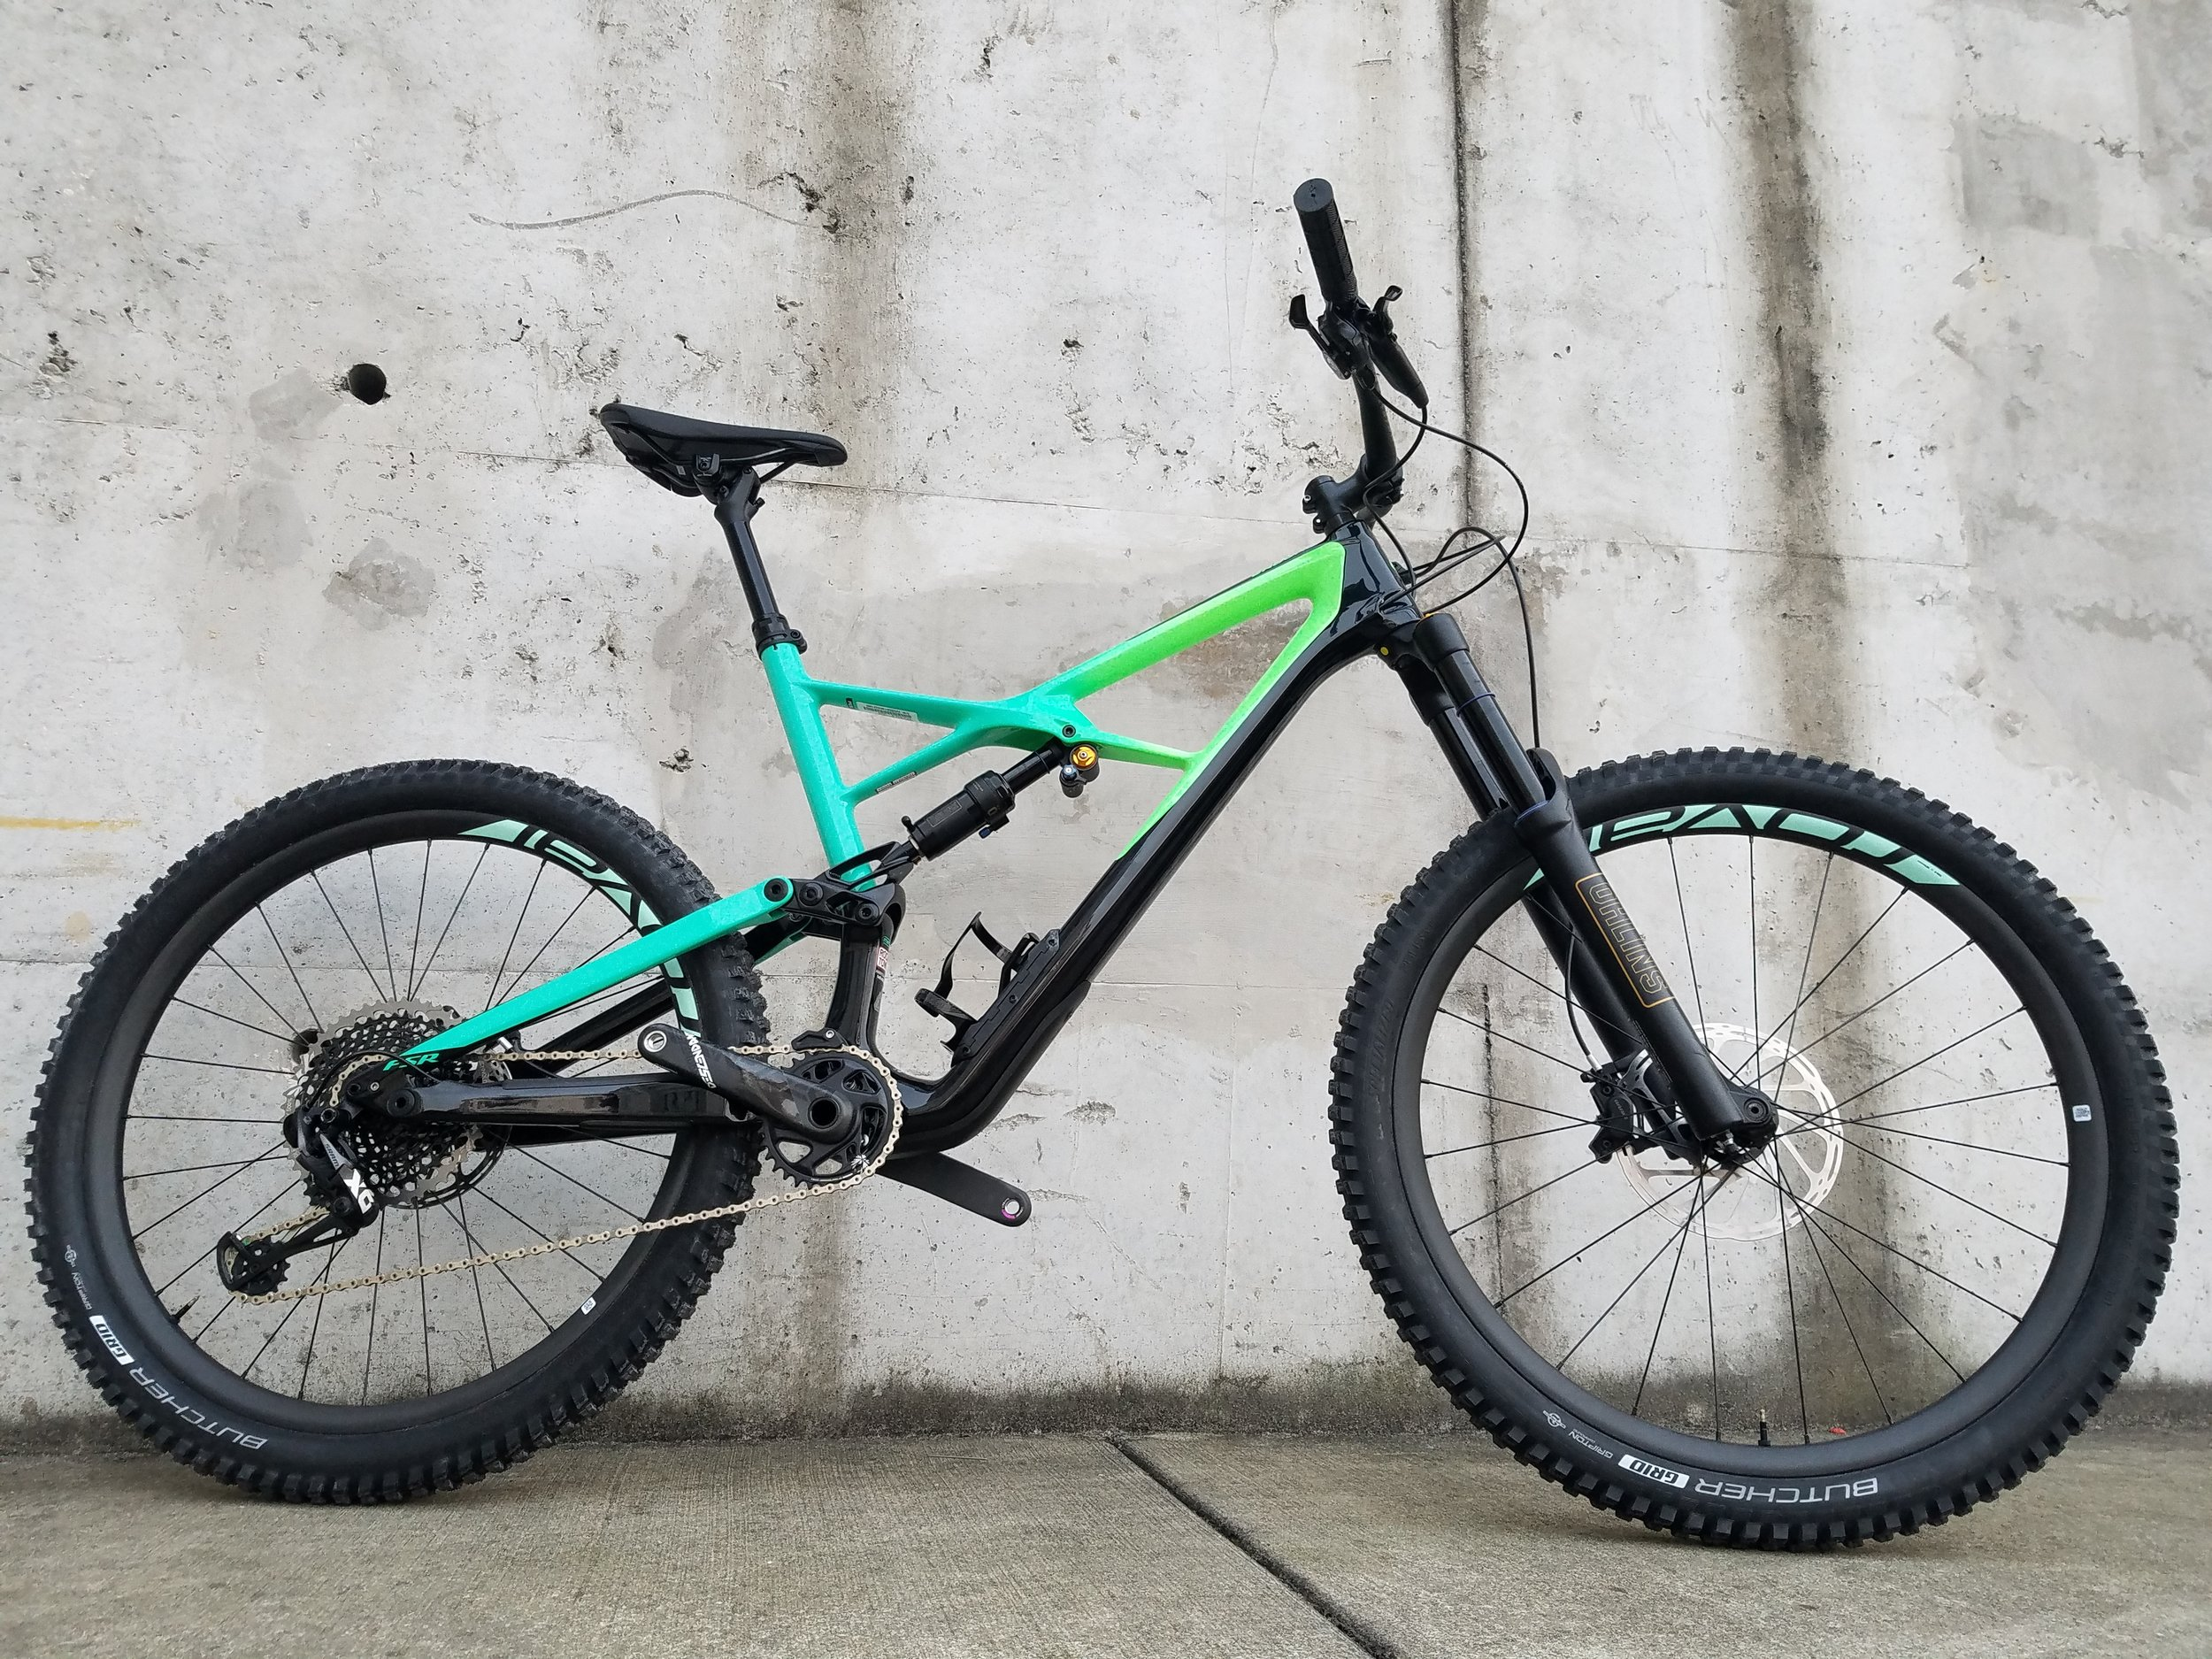 This bike will eat the trails!